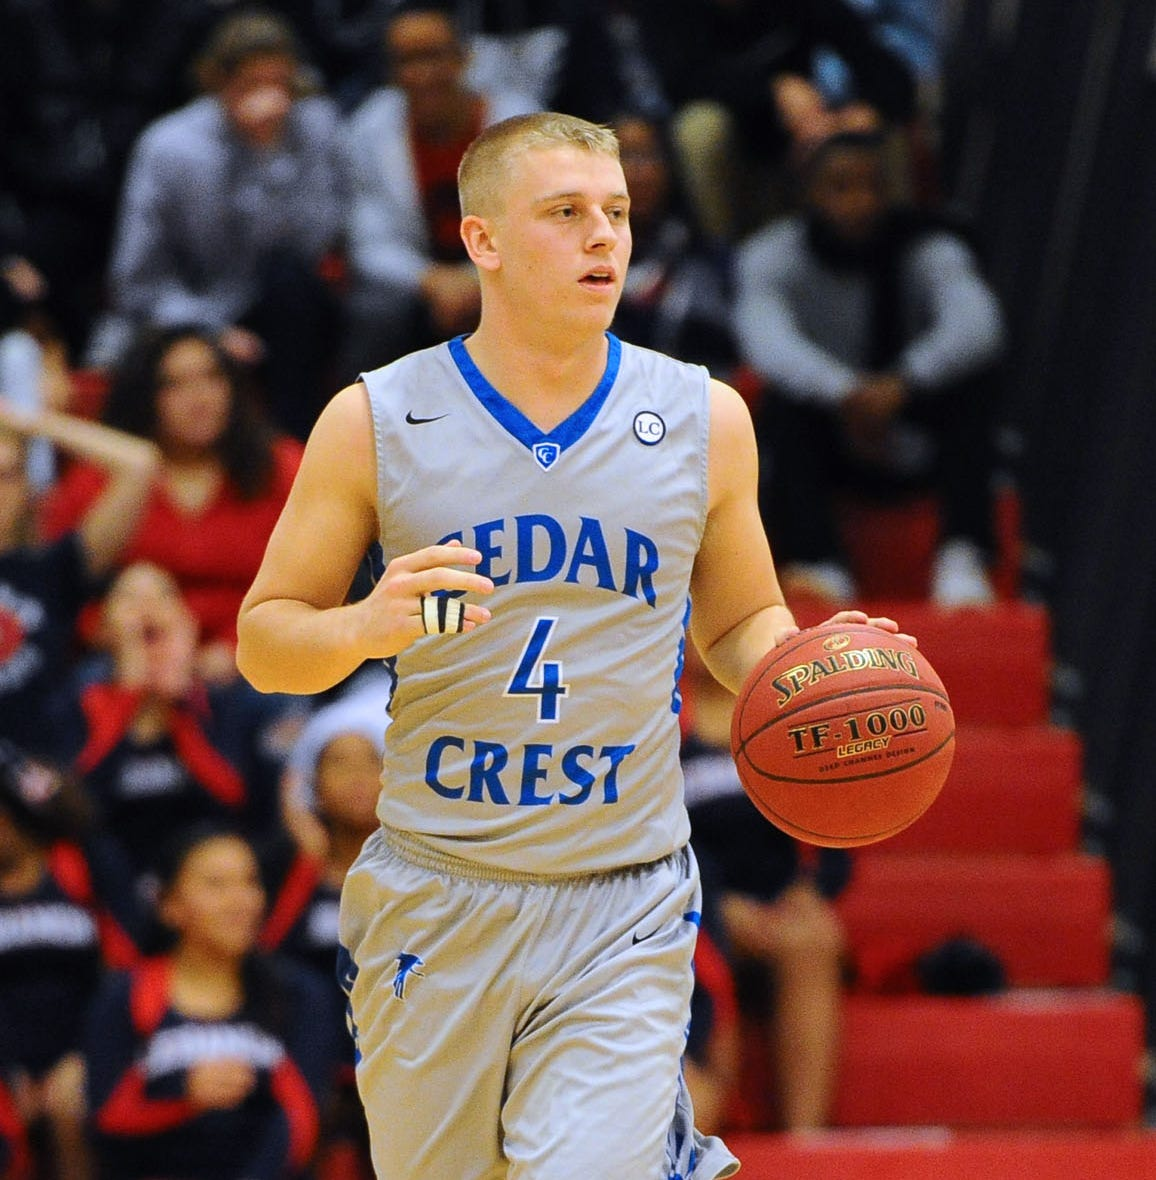 MVP Horn helps Cedar Crest shoot down Lebanon in tip-off title game